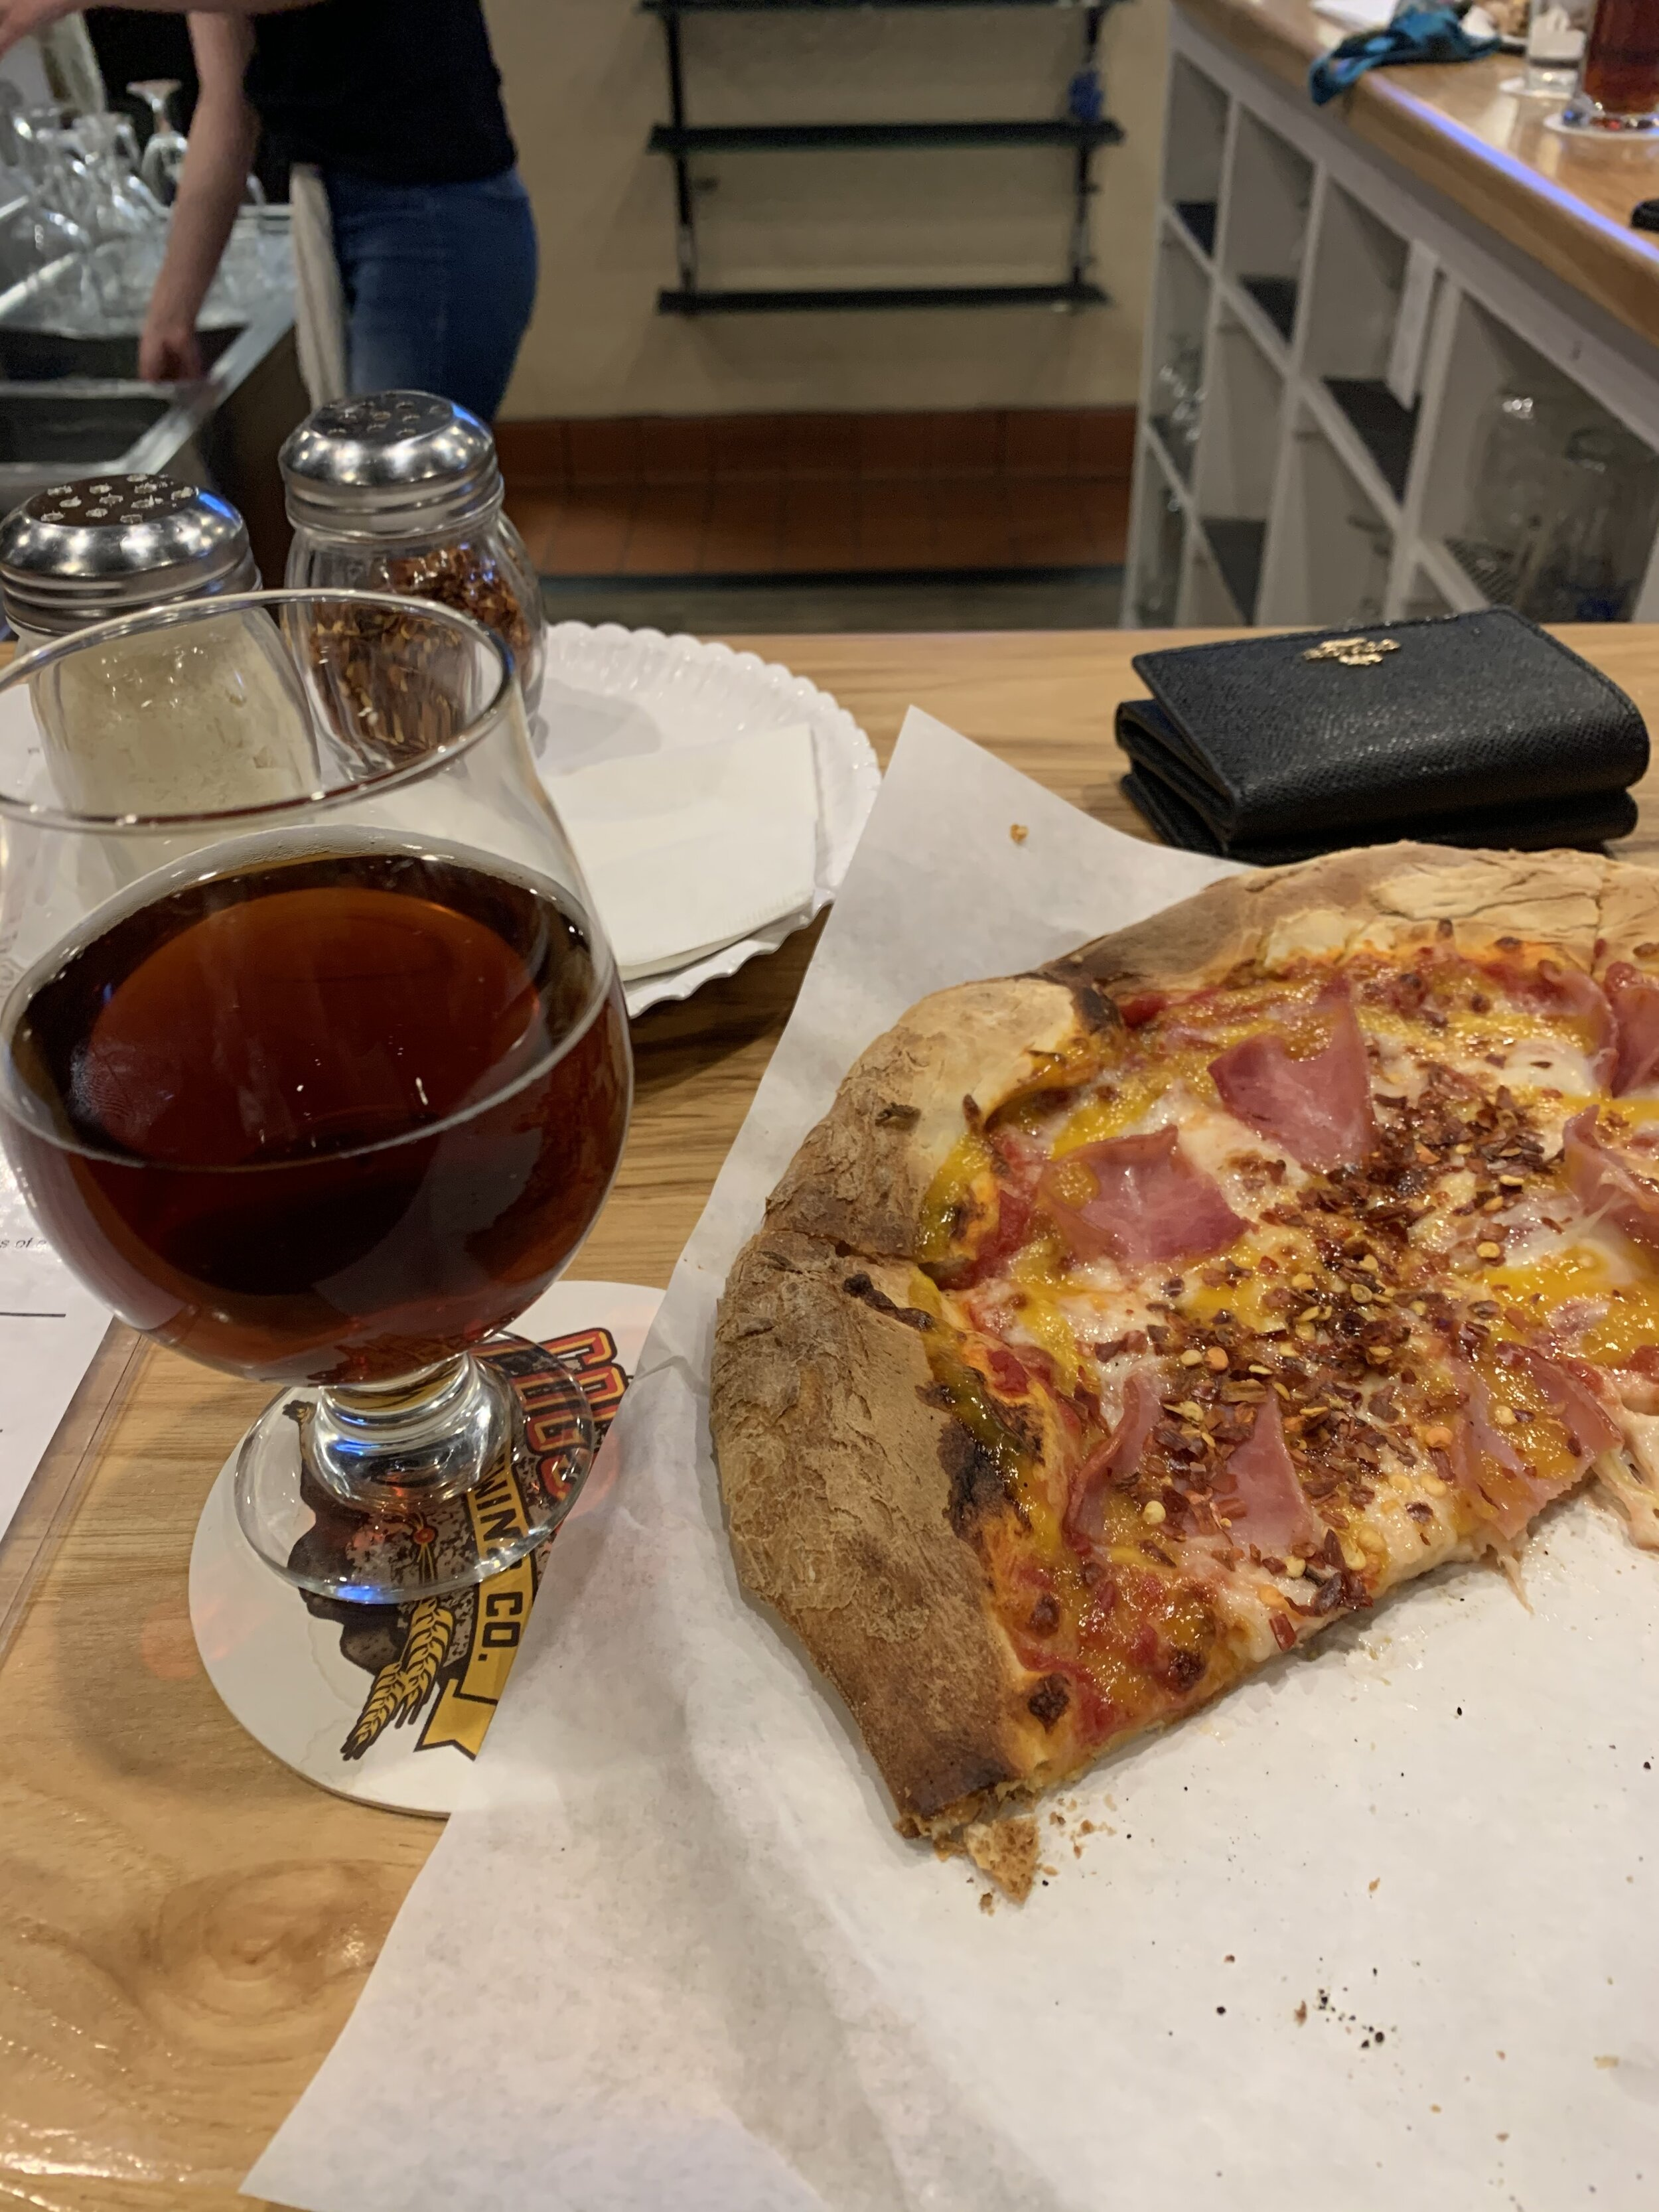 Pizza from Cogstone Brewing. Don't mind the chili flakes… that's my weird touch. Pictured is the Pumpkin Ale.